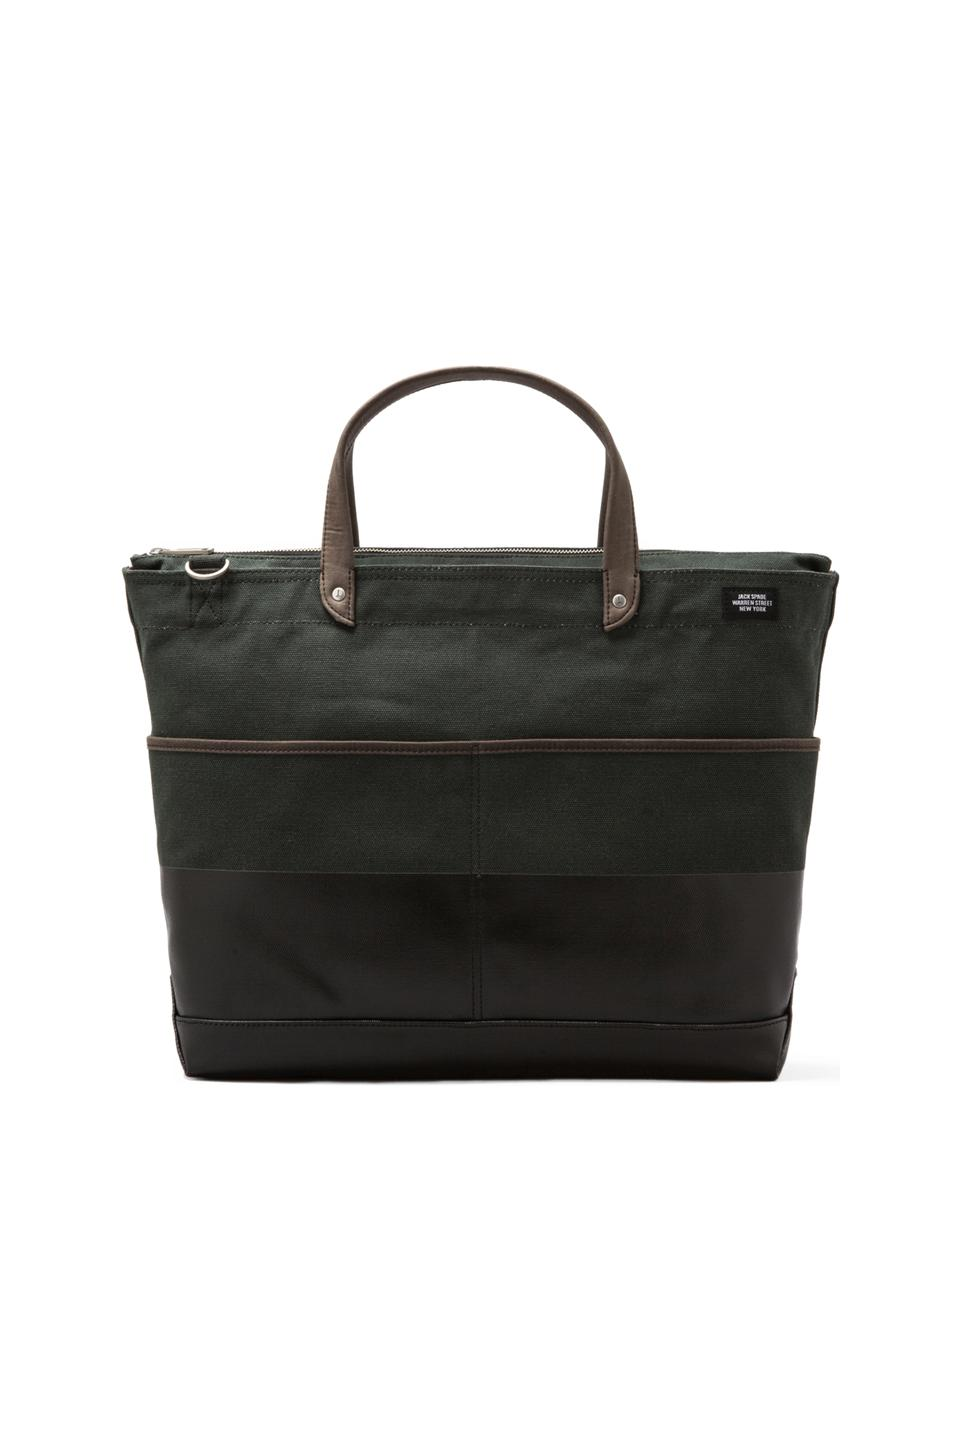 Jack Spade Dipped Carpenter Bag in Evergreen/Black